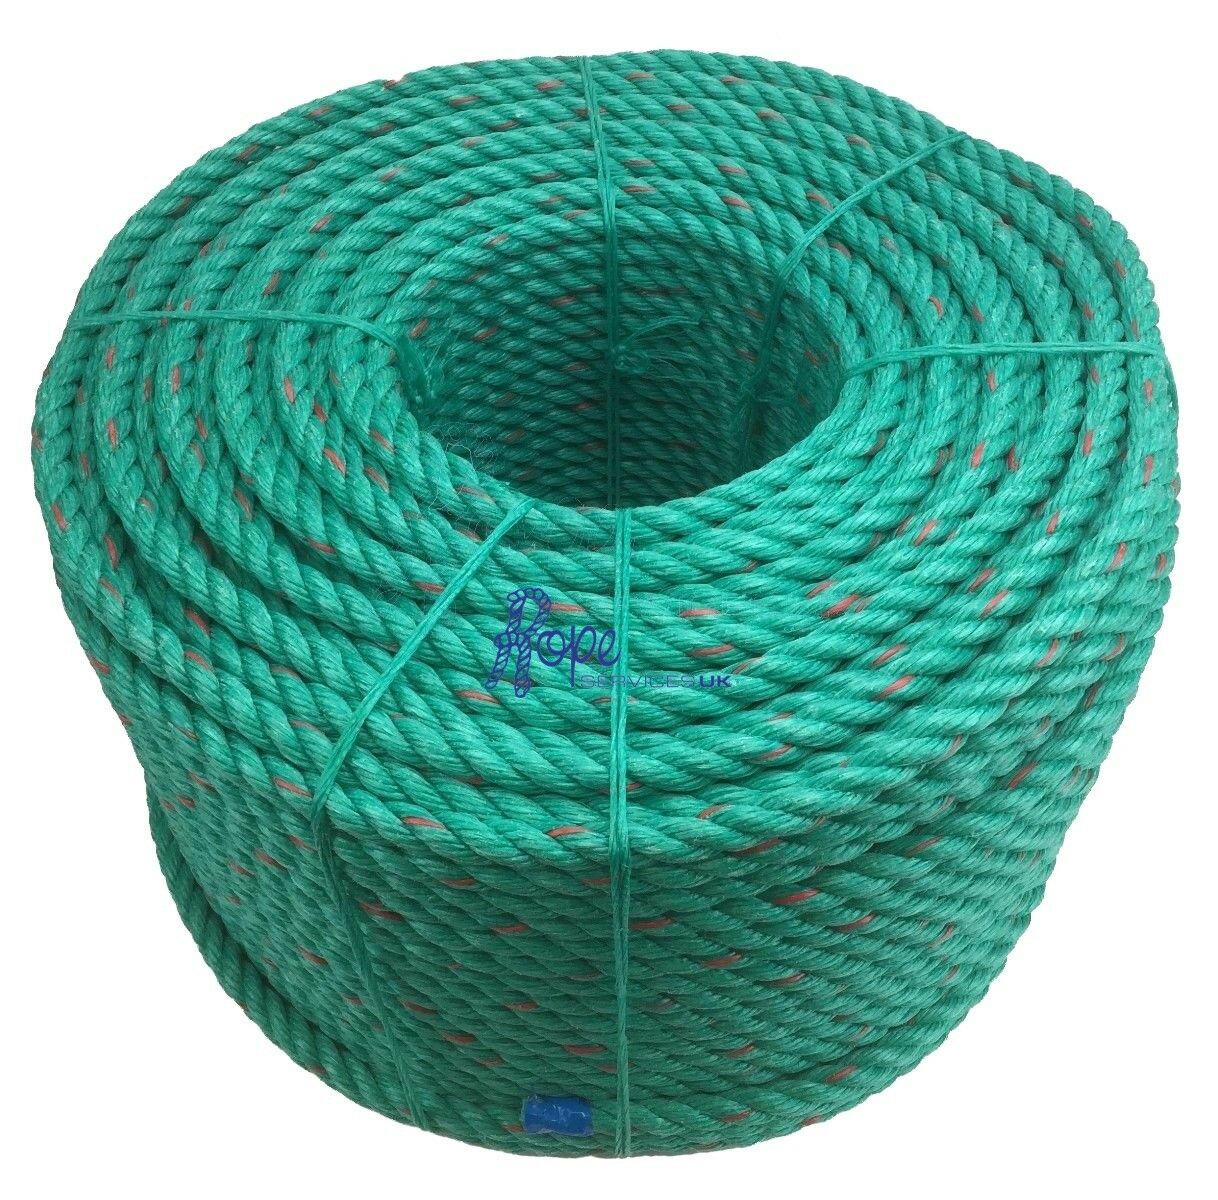 18mm Polysteel Rope  x 25 Metres, Lowering, Arborist, Rigging, Tree Surgery Rope  first time reply